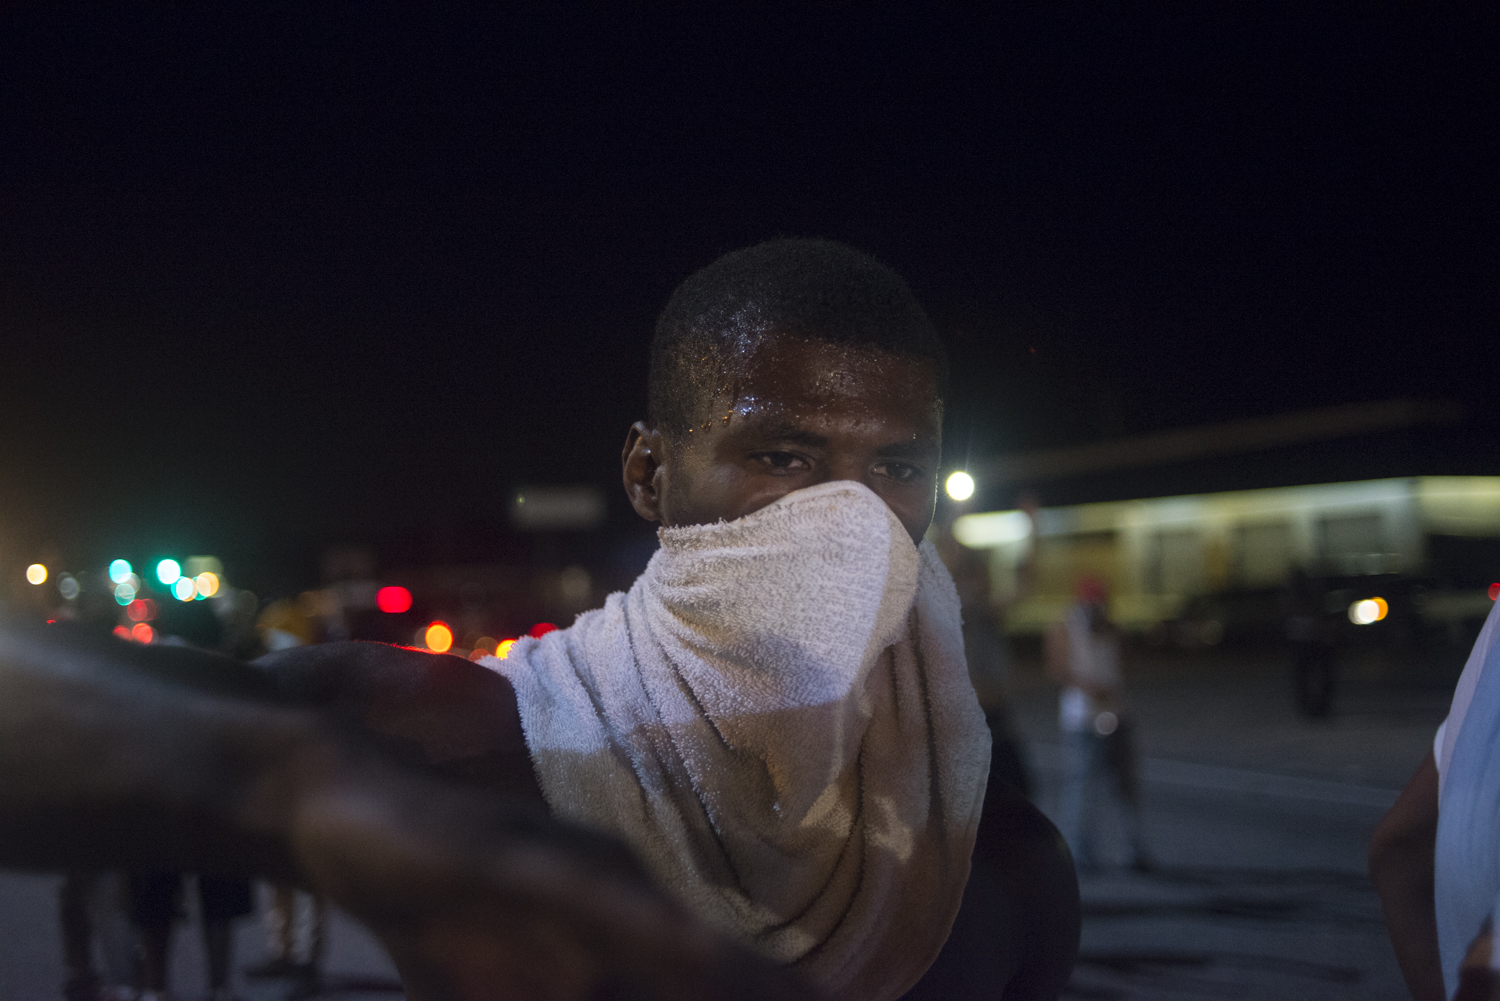 A protestor during demonstrations in Ferguson, Mo. on August 17, 2014.